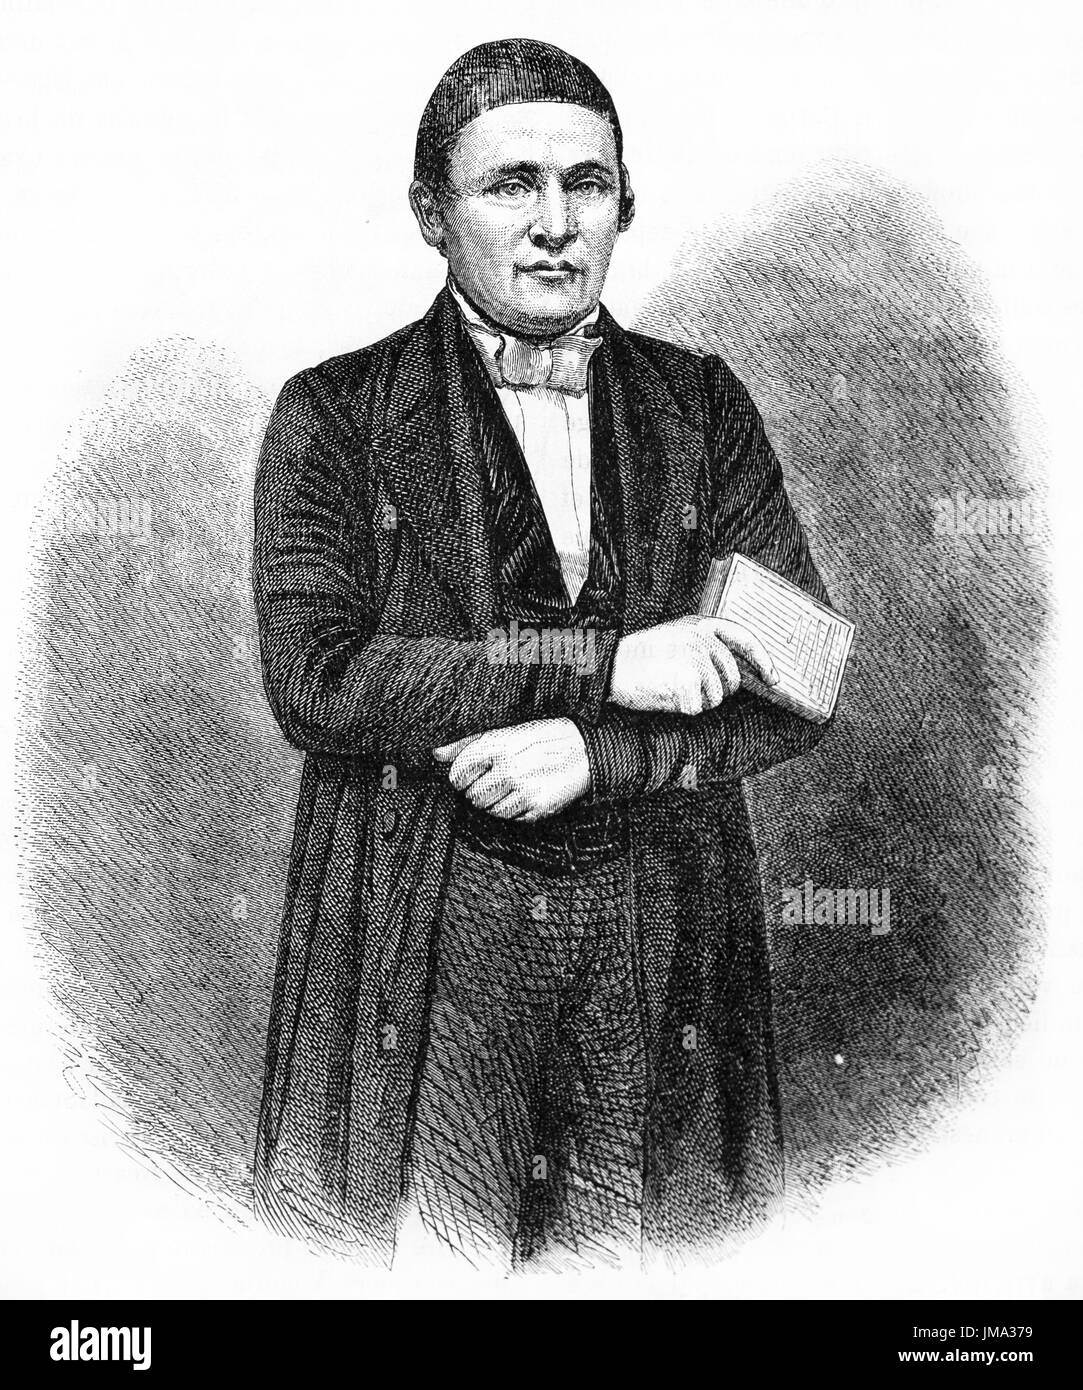 Old engraved portrait of Johann Ludwig Krapf (1810 - 1881), German missionary, explorer, traveker and linguist. Created by Hadamard and Trichon, publi - Stock Image